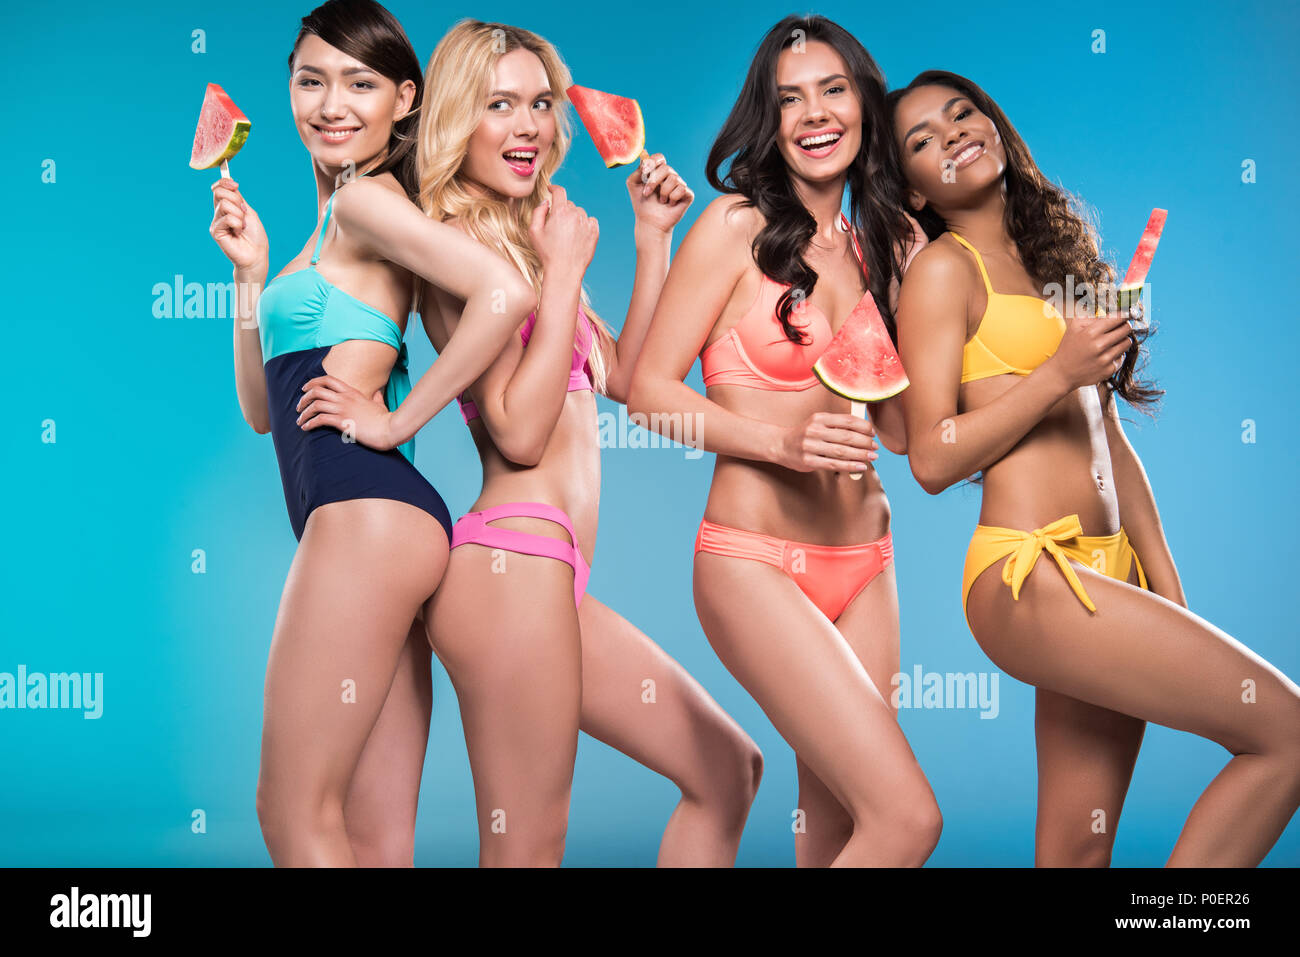 a8eb7394b0 attractive women in swimsuits smiling and posing with watermelon pieces -  Stock Image